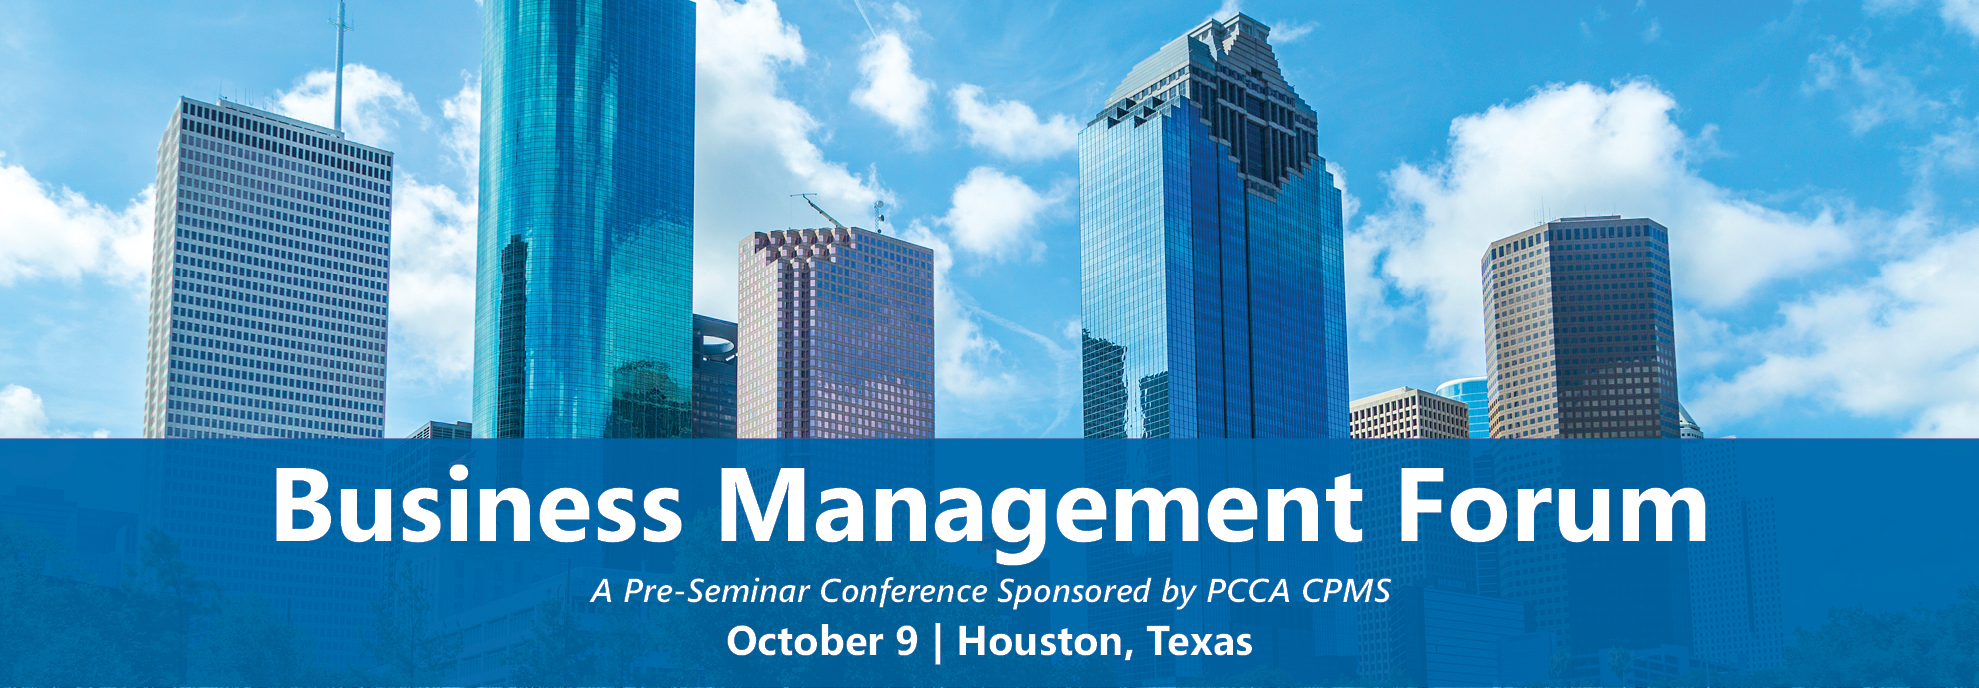 Business Management Forum | A Pre-Seminar Conference Sponsored by PCCA CPMS